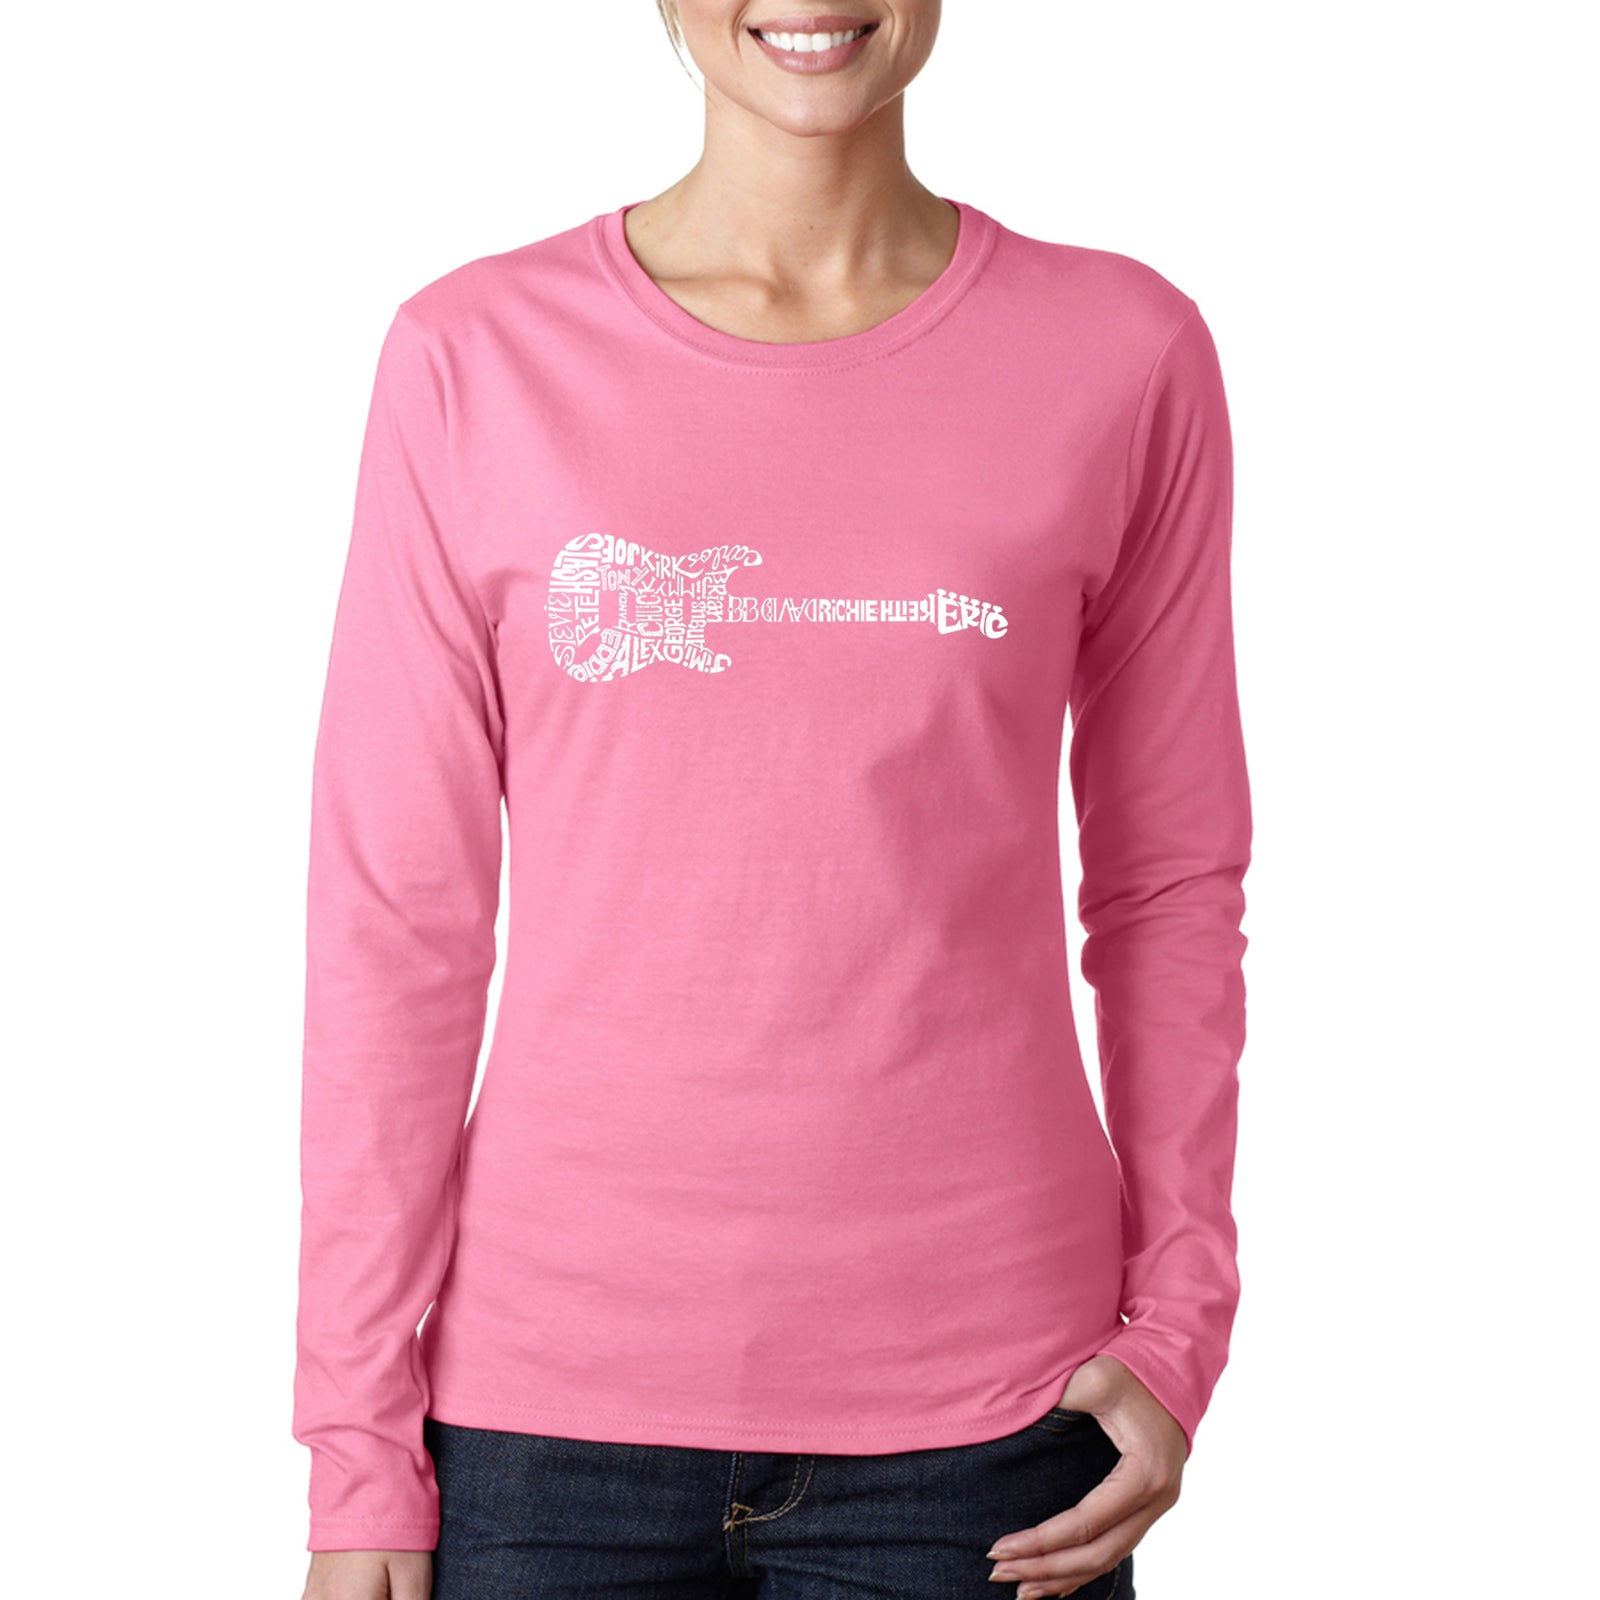 Women's Long Sleeve T-Shirt - Rock Guitar